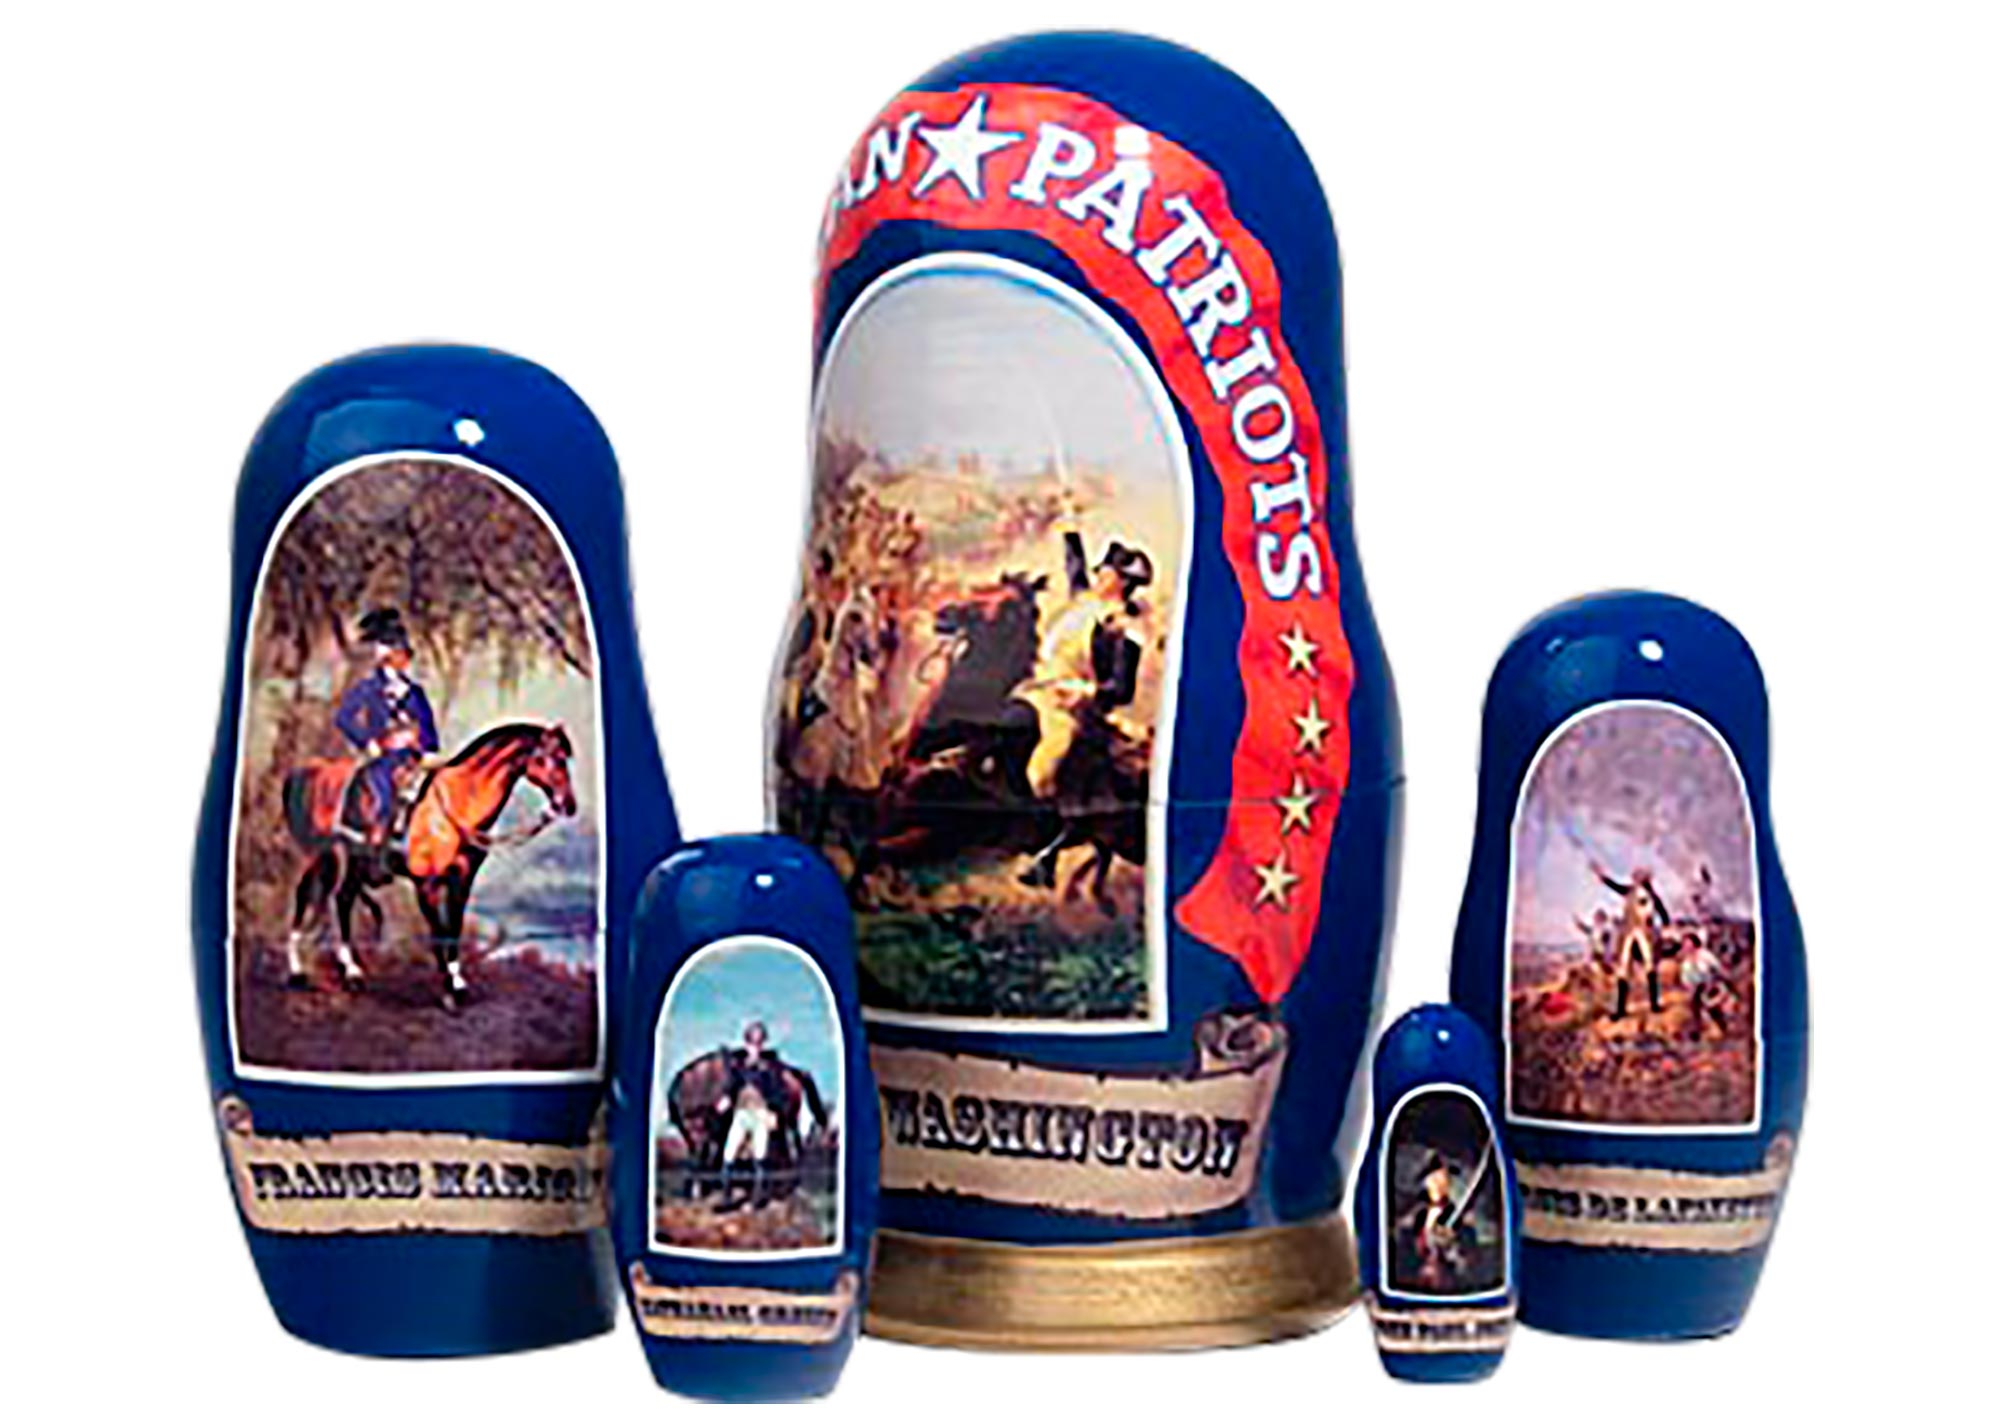 "Buy American Patriots Nesting Doll 5pc./6"" Lim. Ed. to 500 at GoldenCockerel.com"